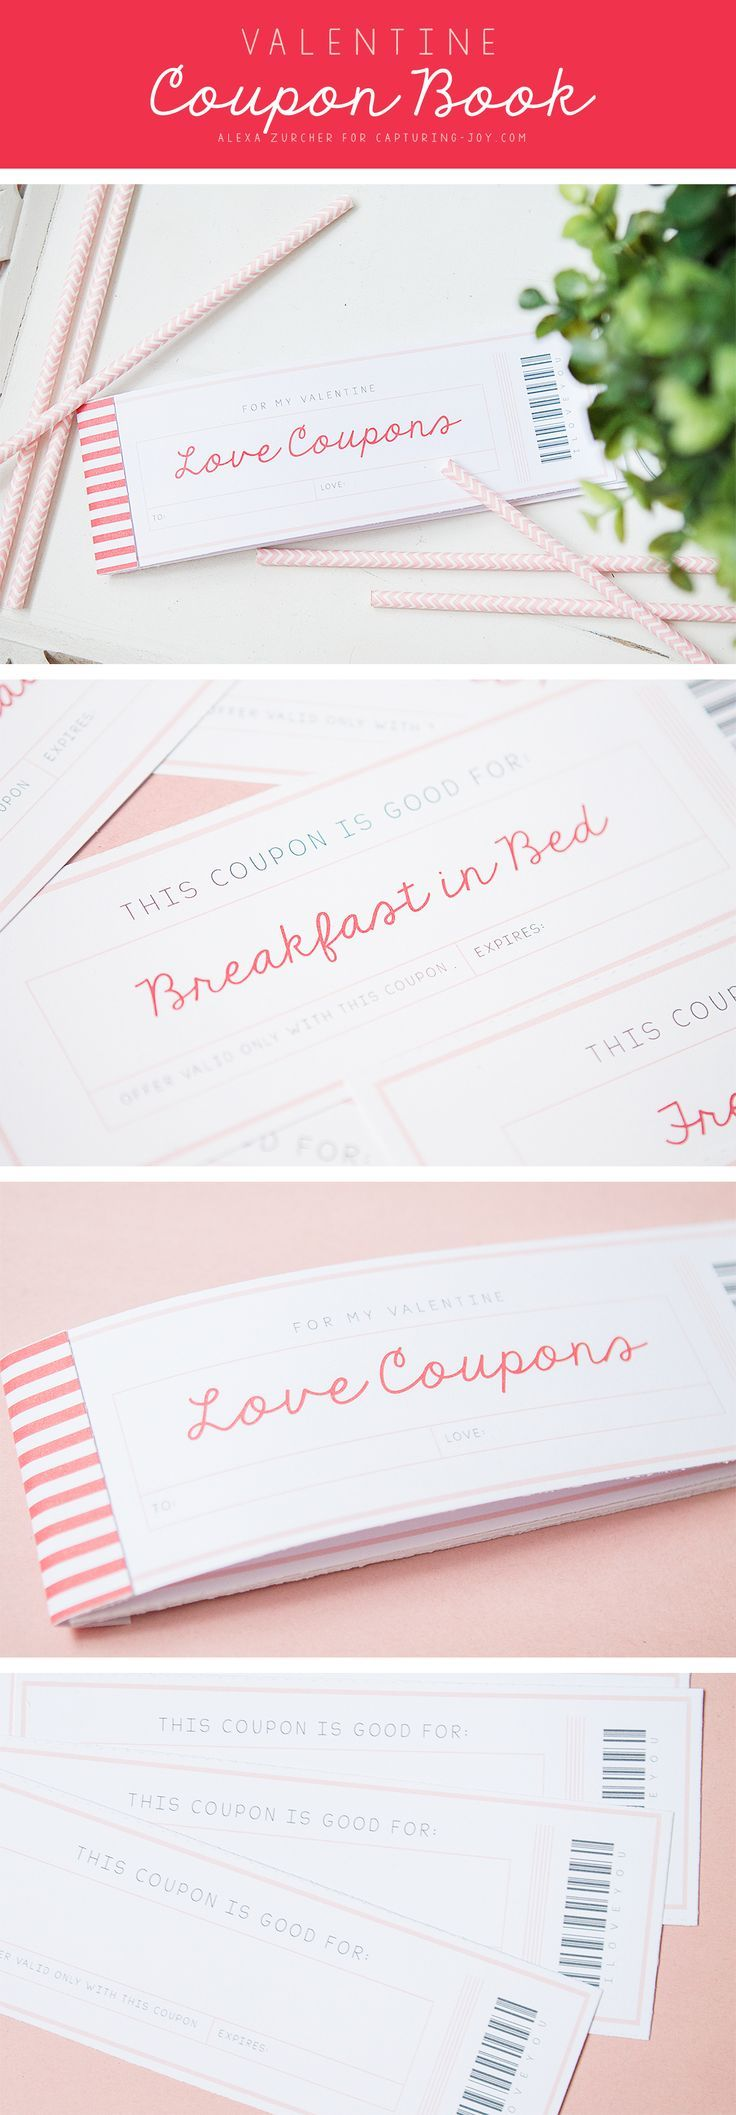 Love Coupons  Printable Coupons Valentine Printable